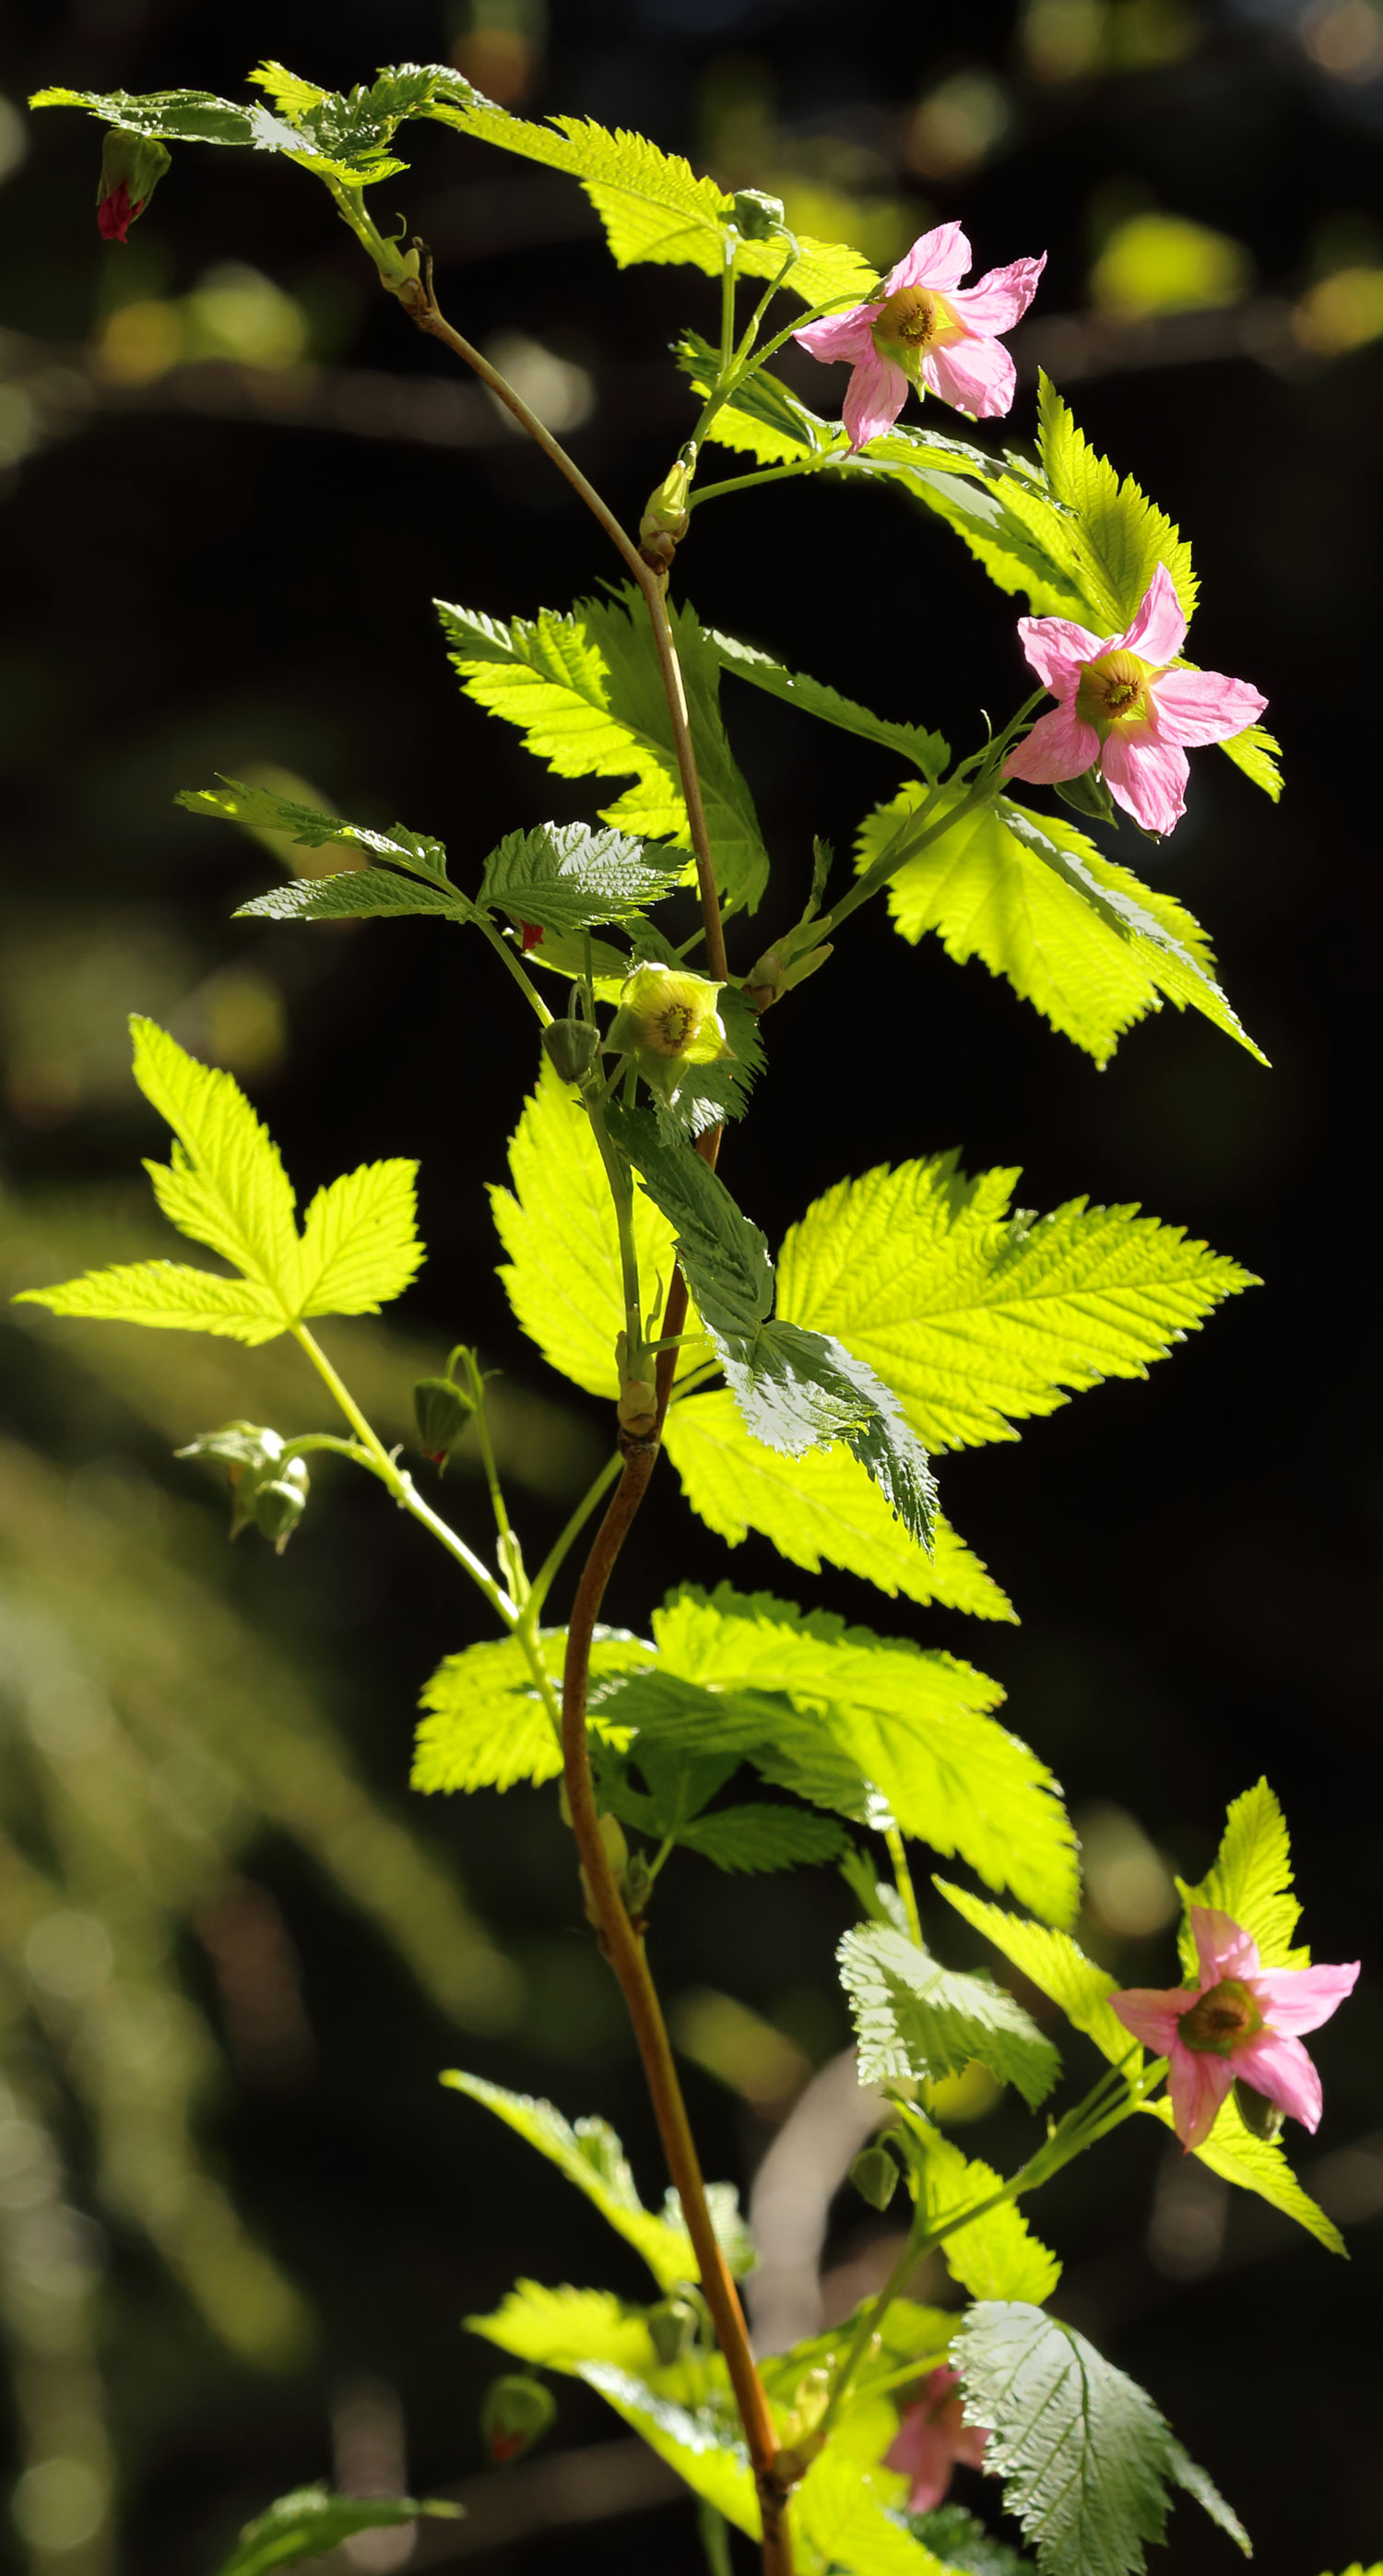 Salmonberry blossoms